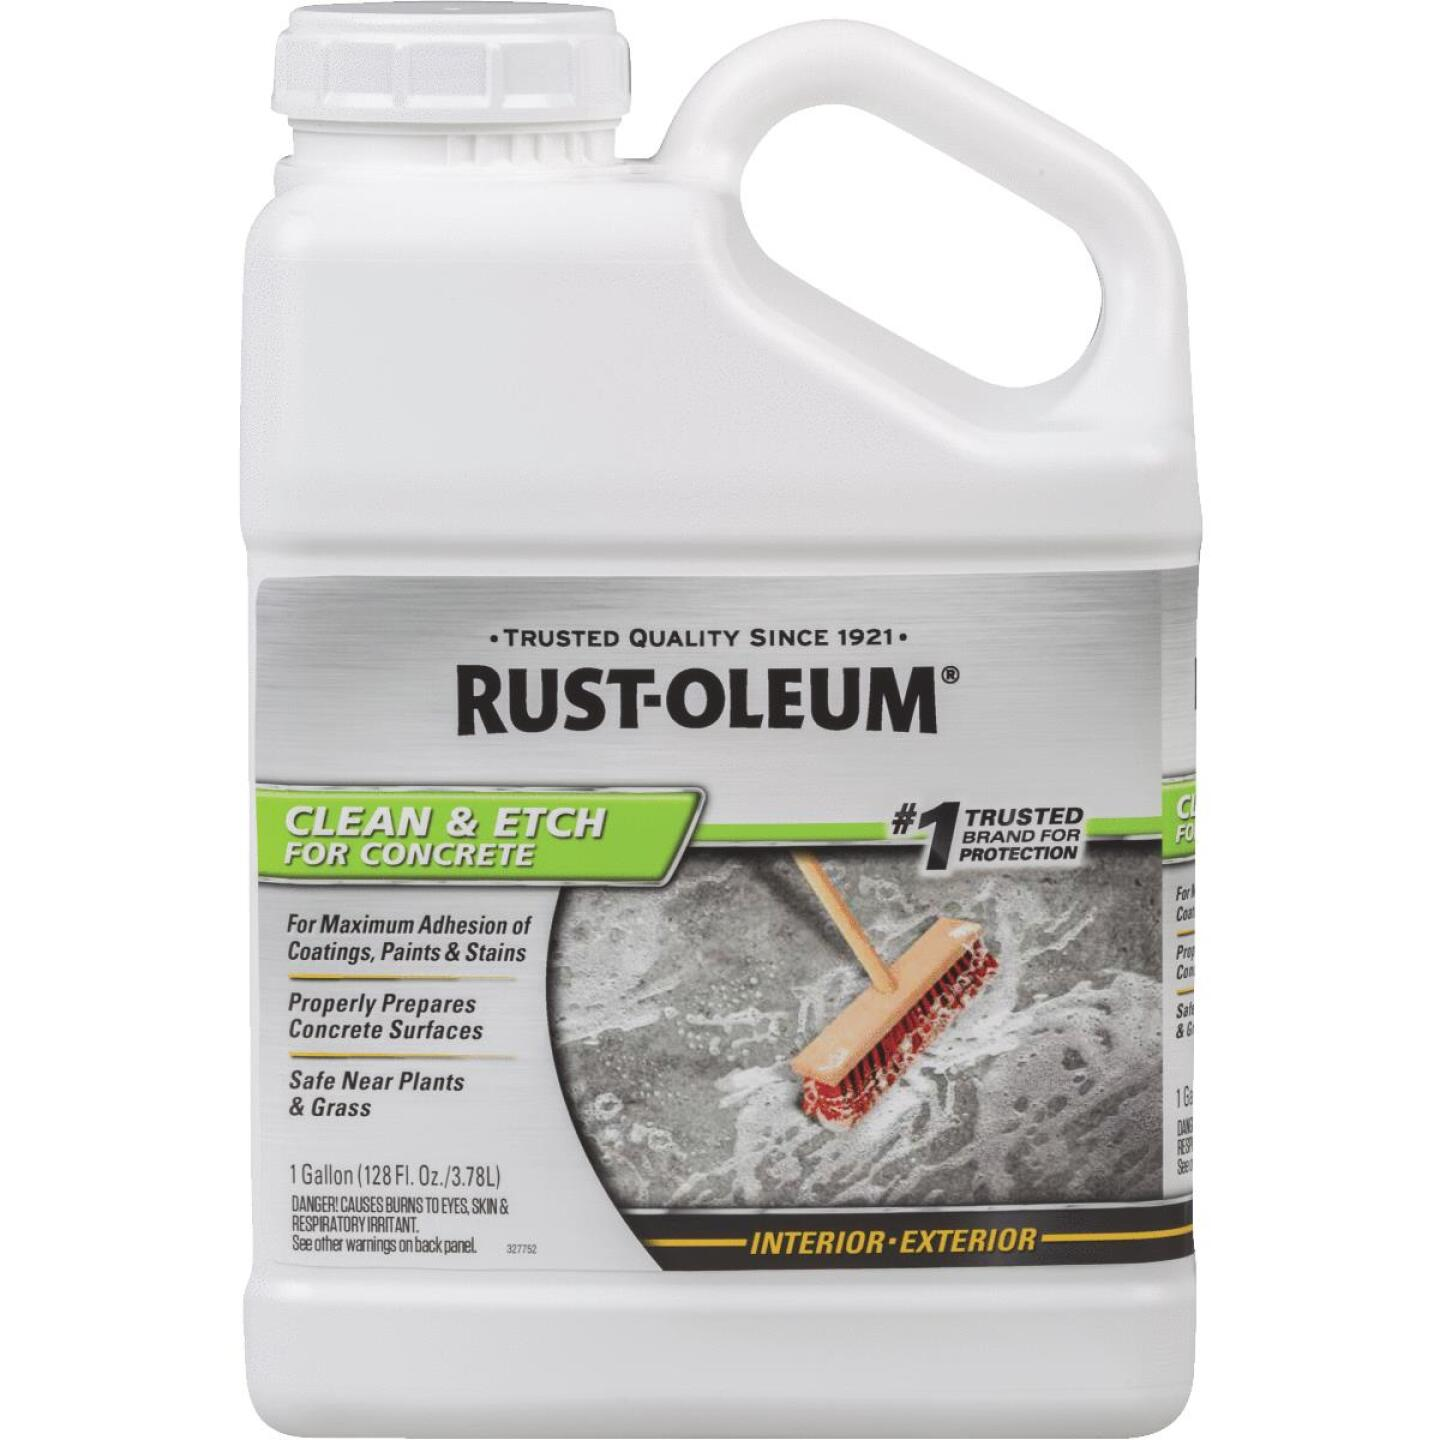 Rust-Oleum Concrete Clean & Etch Ready-To-Use, 1 Gal. Image 1